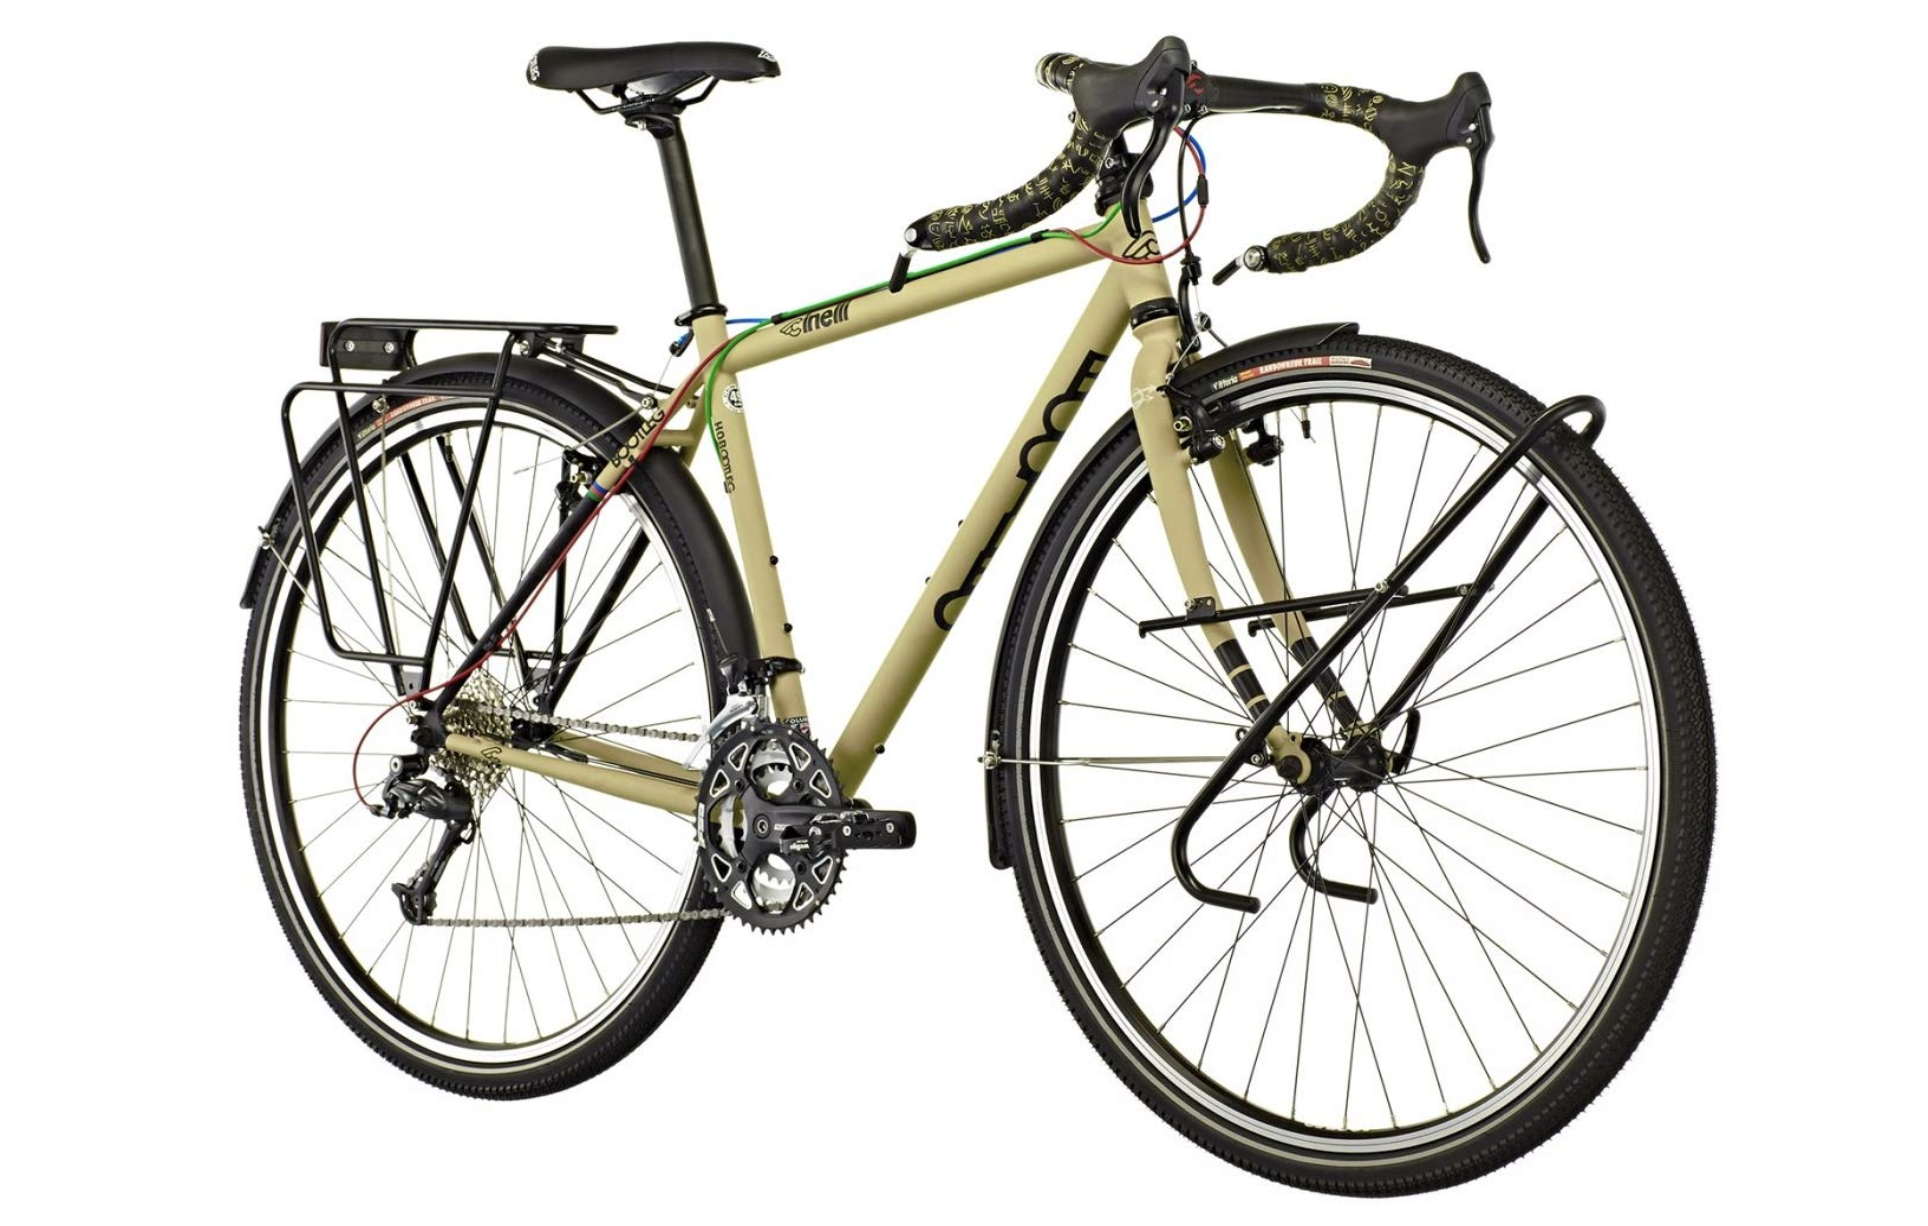 Top 10 Best Adventure Road Touring Bicycles of 2021 Review